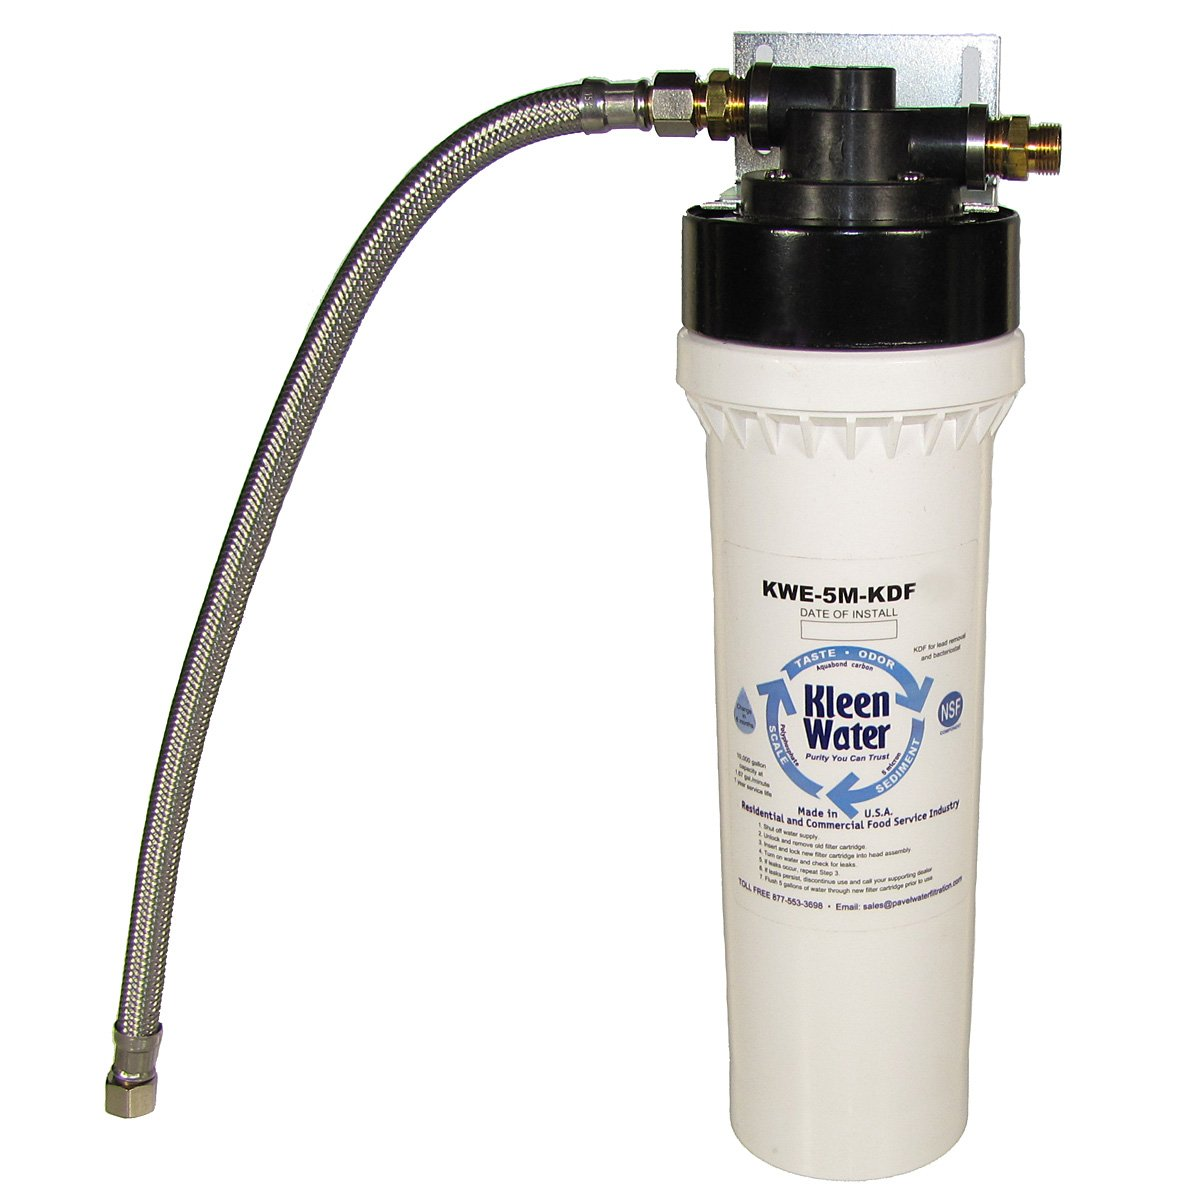 KleenWater Under Sink Filter System for Kitchen or Bathroom, Bottle Quality Drinking Water